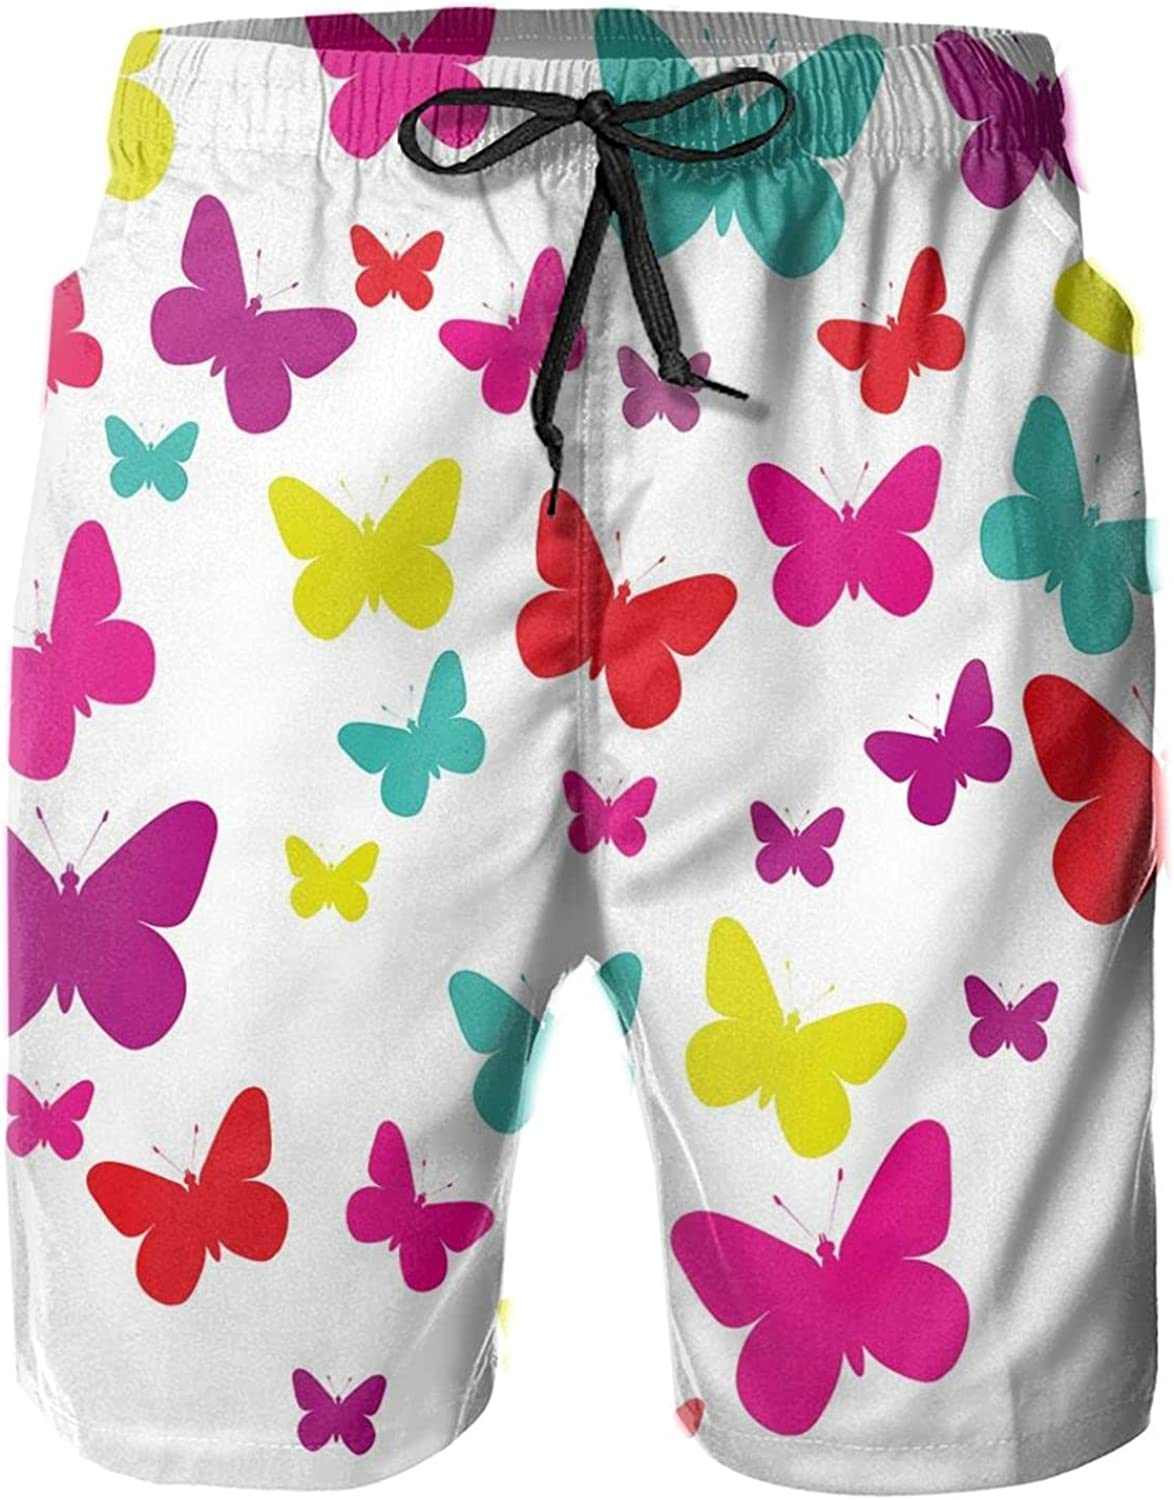 Spring Inspired Butterflies Forming A Heart Multicolored Image Love Nature Theme Mens Swim Shorts Casual Workout Short Pants Drawstring Beach Shorts,XXL